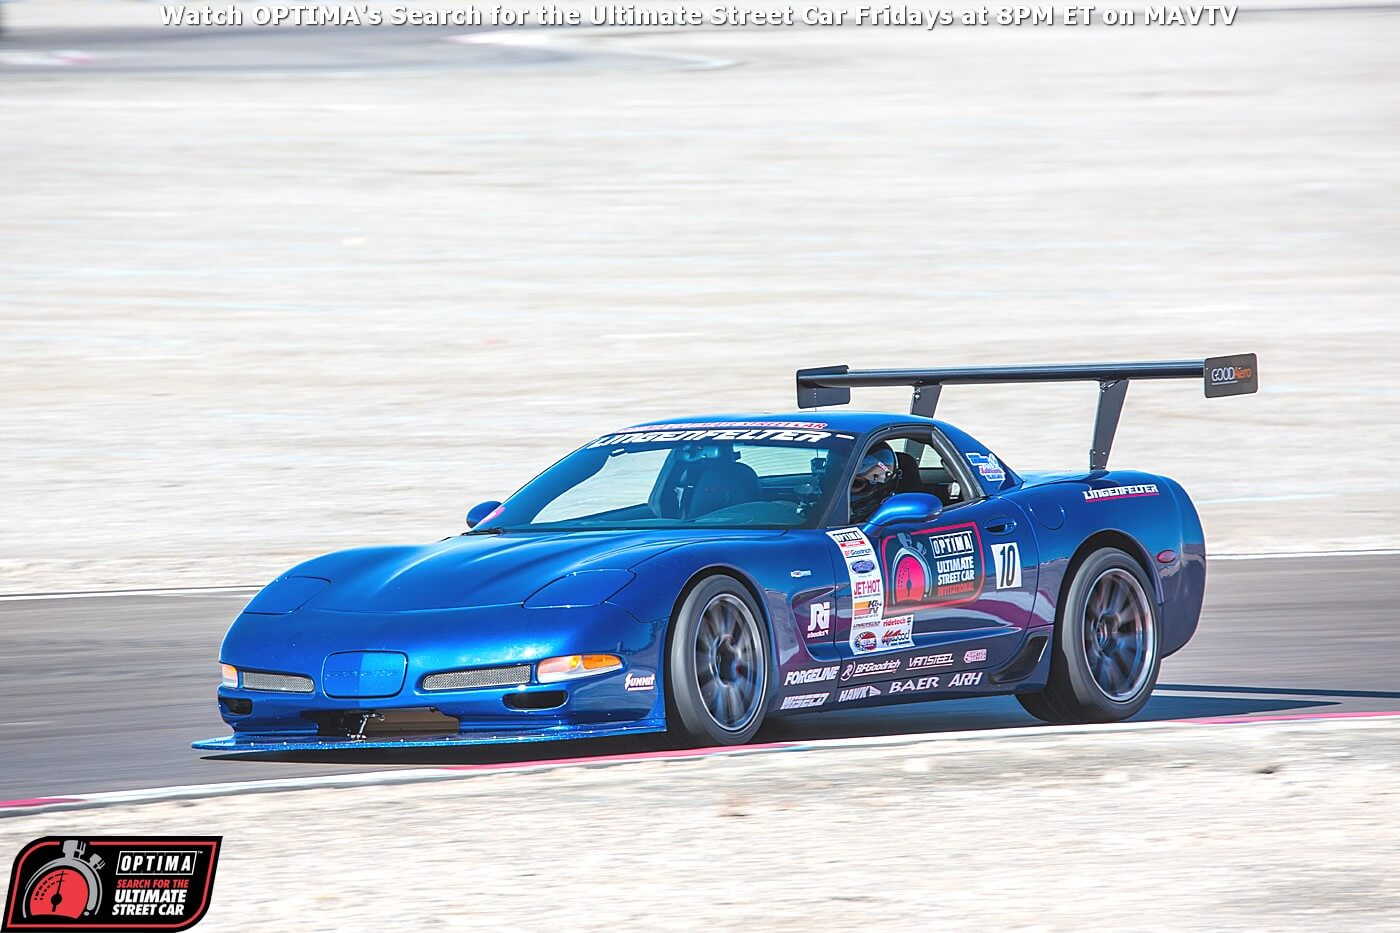 Danny-Popp-2003-Chevrolet-Corvette-Z06-BFGoodrich-Hot-Lap-Challenge-2014-OPTIMA-Ultimate-Street-Car-Invitational_252